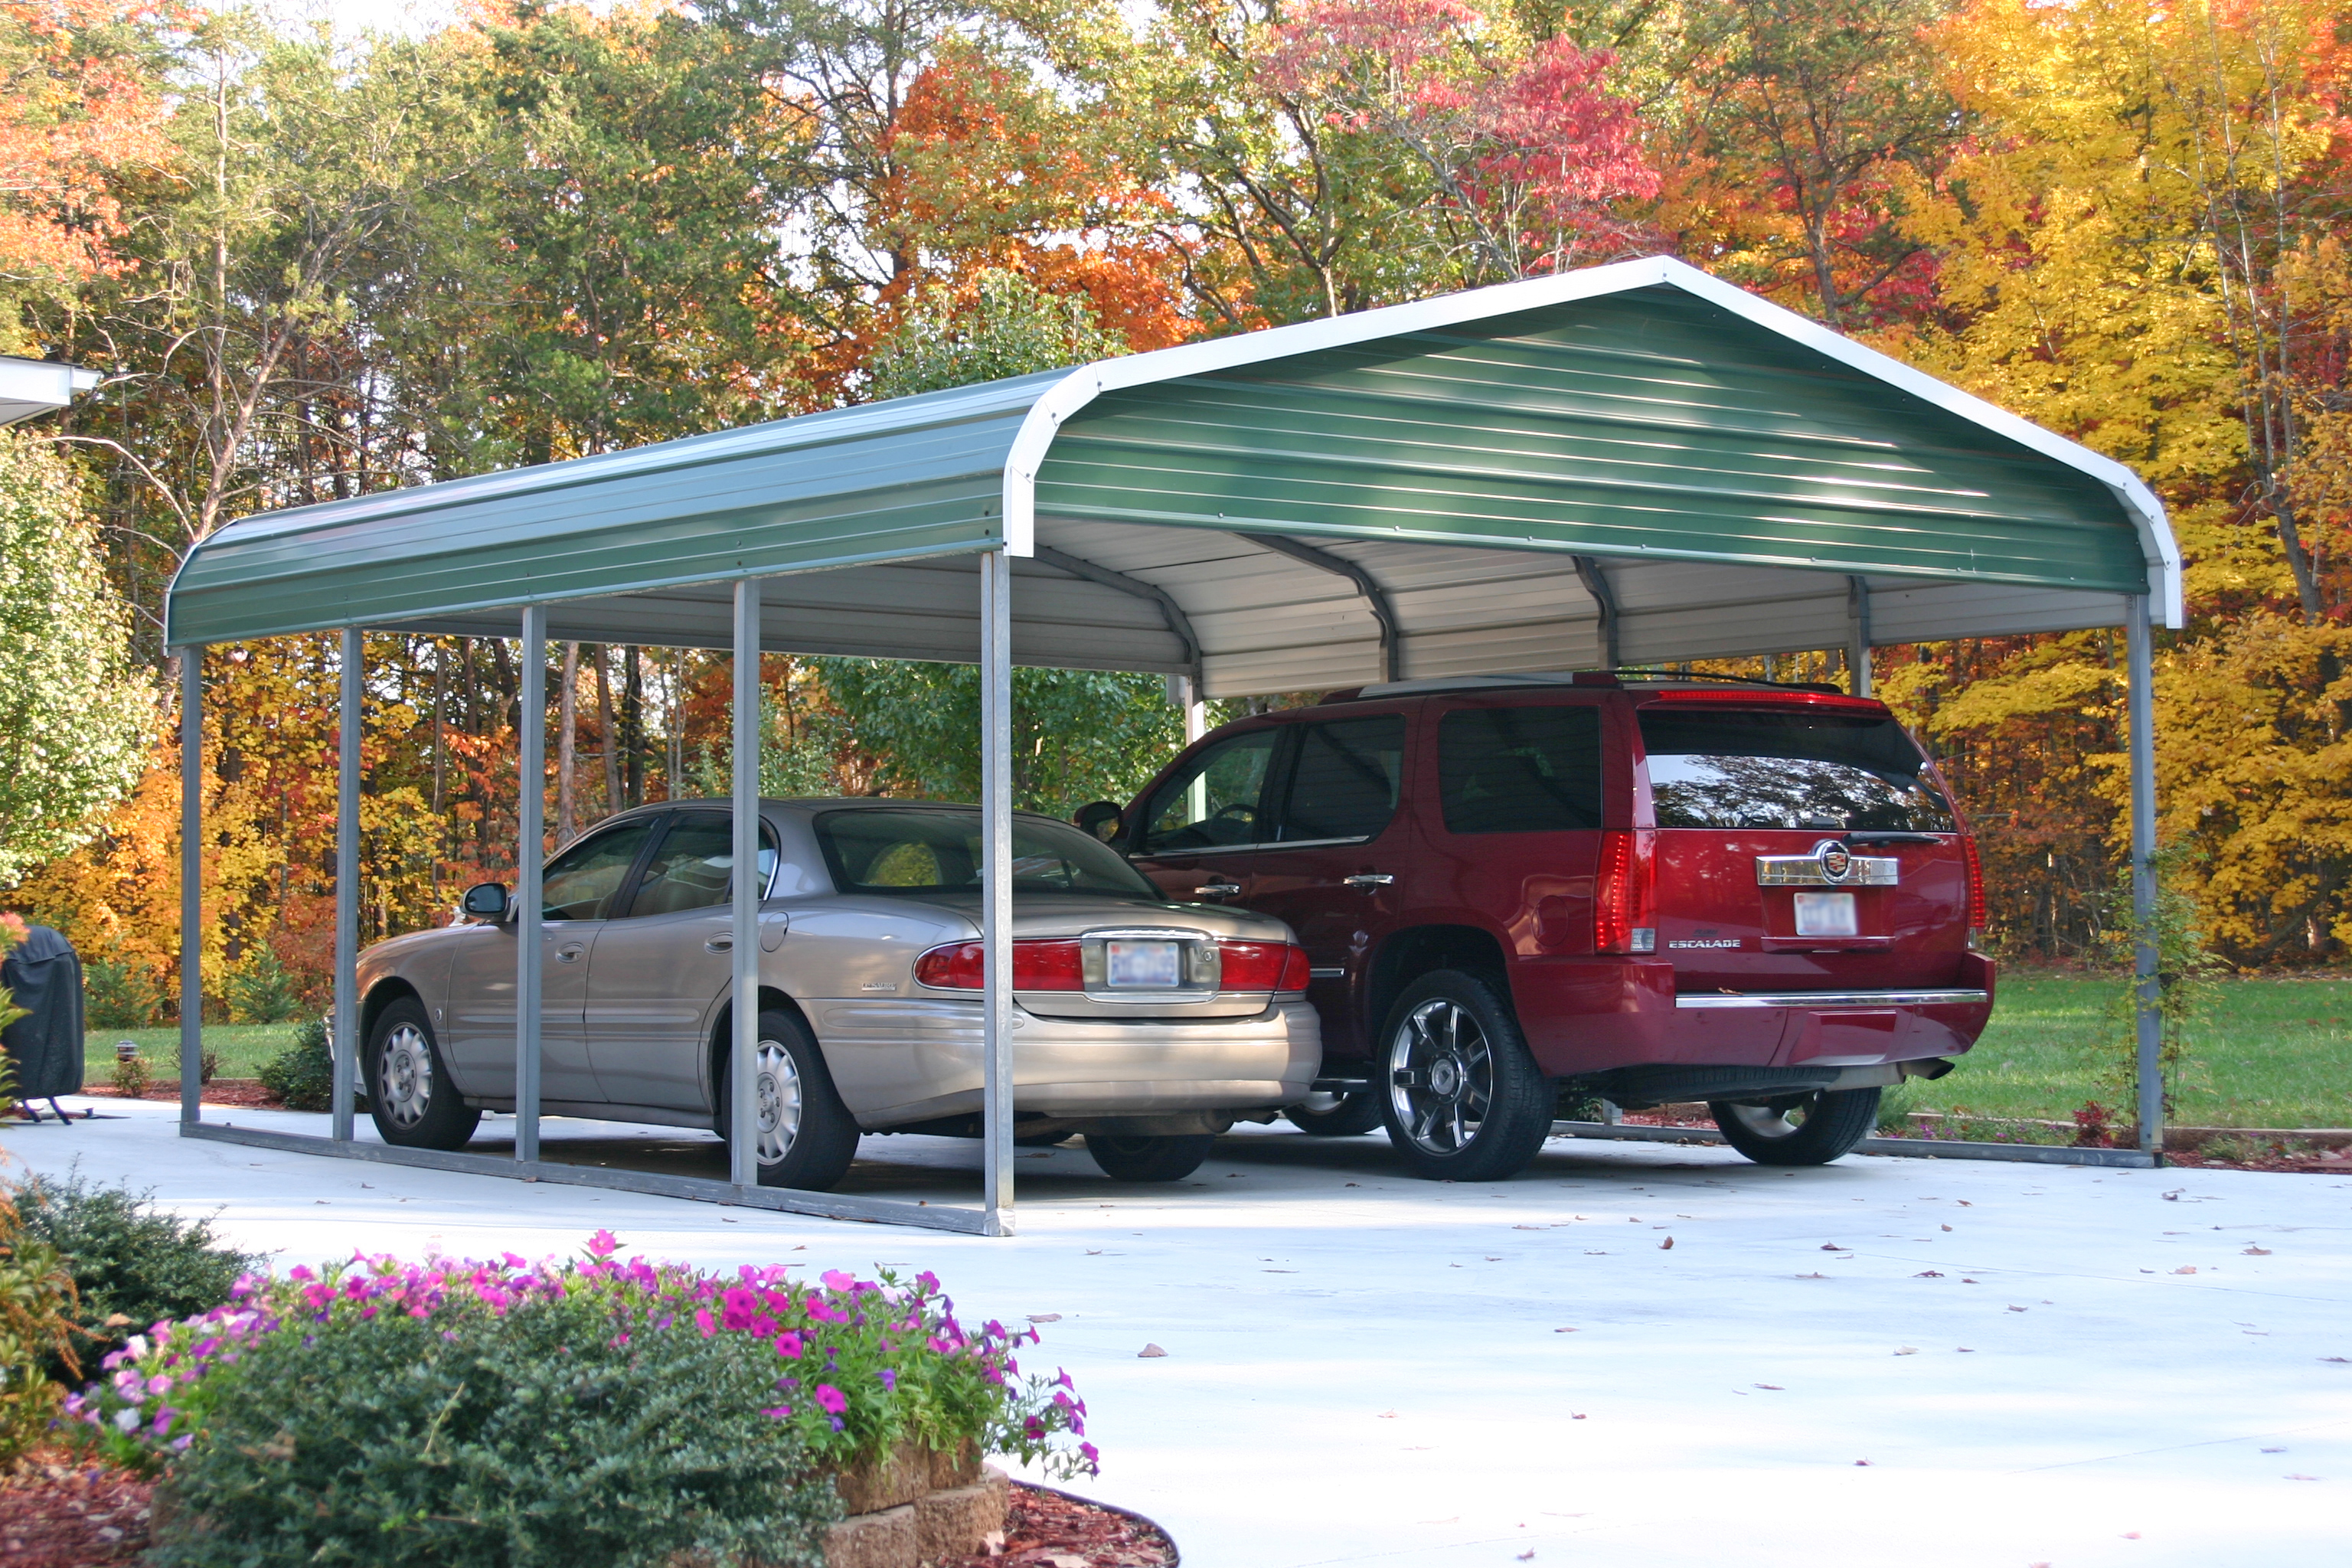 kansas carports ks carports for sale. Black Bedroom Furniture Sets. Home Design Ideas